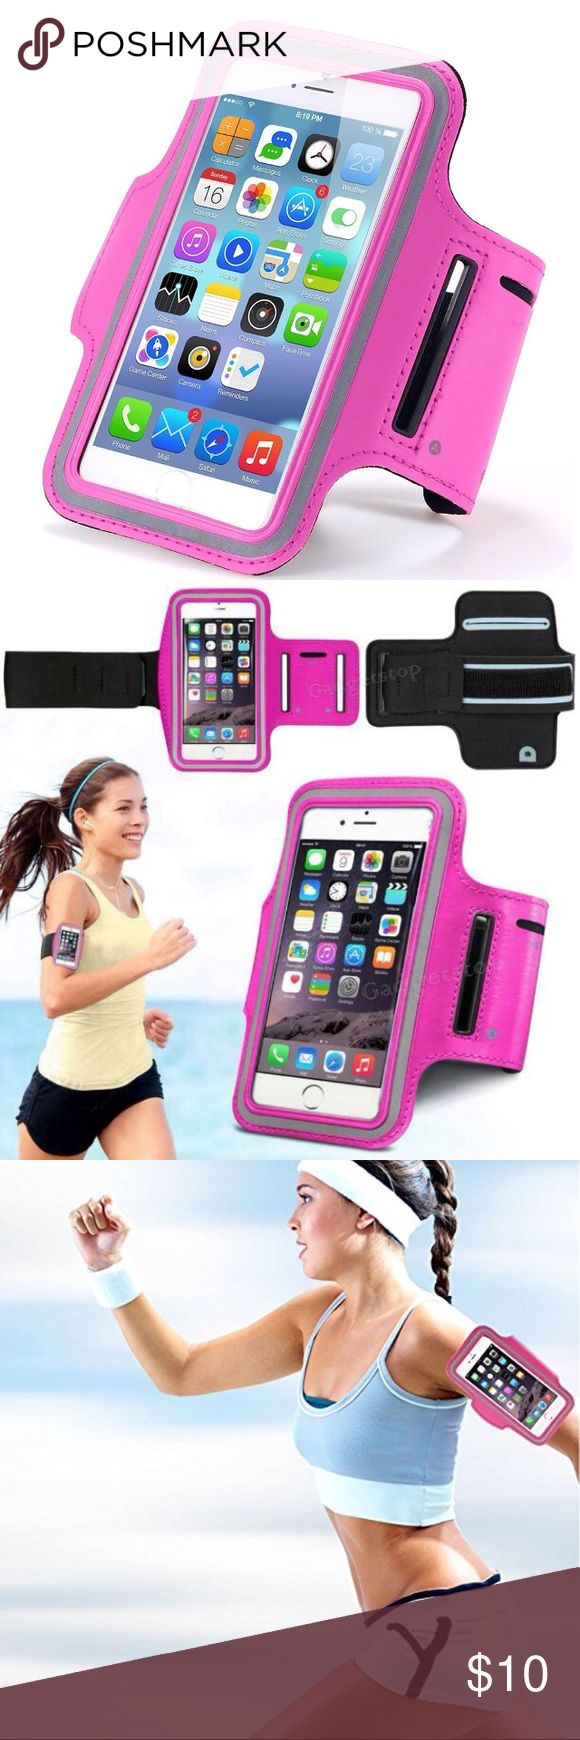 i7+/6+/6s+ High quality gym and sport armband case i7+/6+/6s+ High quality gym and sport armband case Listing is Durable water-proof, sweat-proof Sport and Gym Armband case for iPhone 7 Plus & 6 plus & 6s Plus This is unisex sport accessory for Women & Men indoor Gym and Outdoor sport smart phone Case holder. High quality Nylon Bag Cover Holder specially for iPhone 7 Plus and 6 Plus and 6s Plus Fashion color Designed for your convenience. Color: Rose Order will ship within 24 hours…